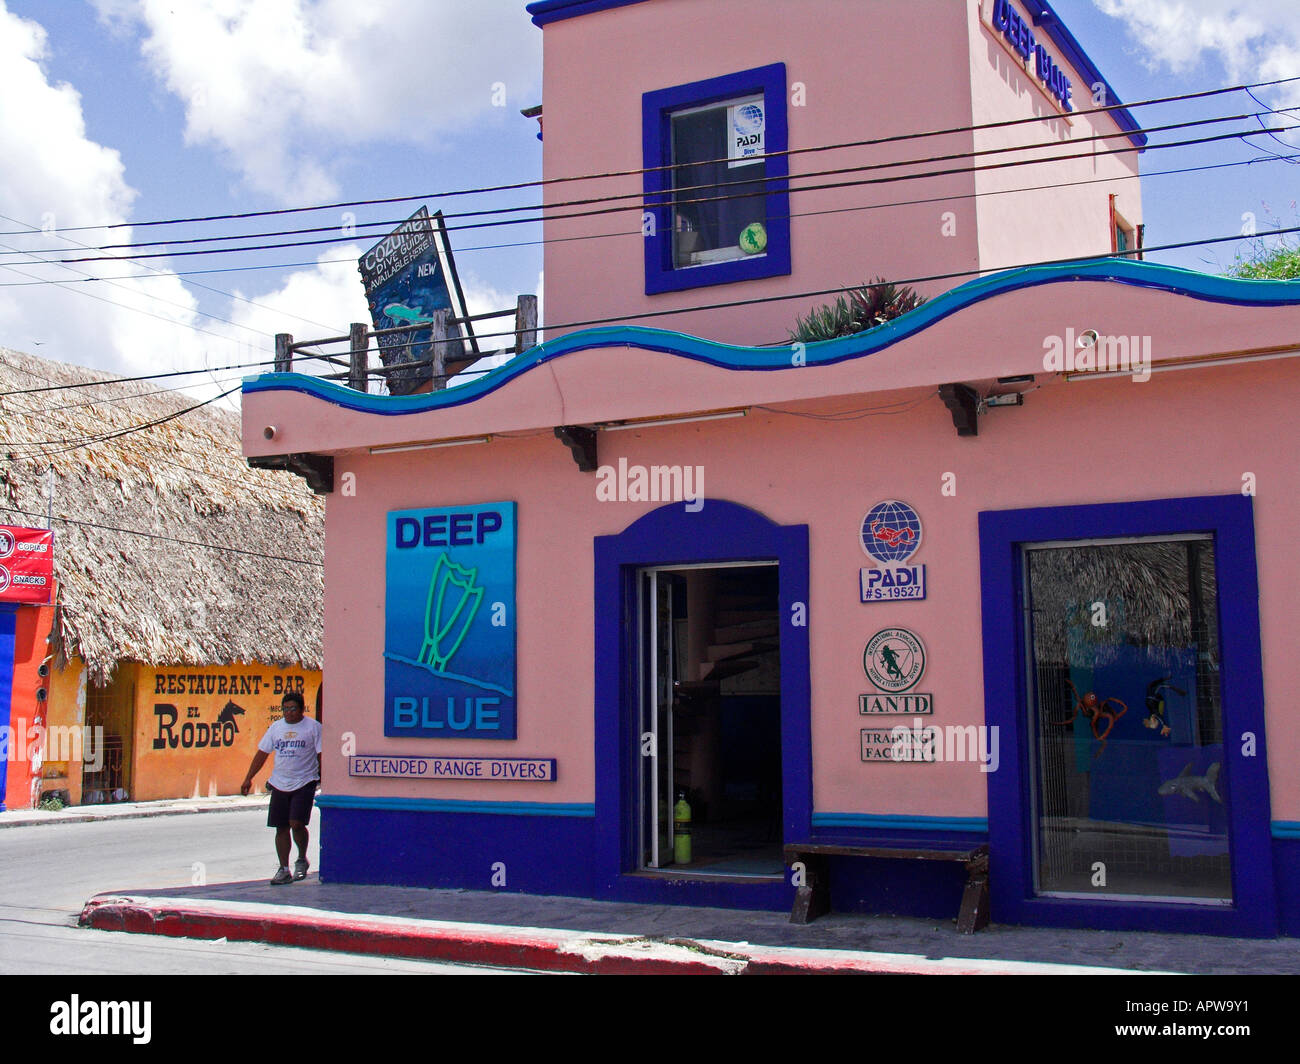 Padi dive center stock photos padi dive center stock - Dive shop mexico ...